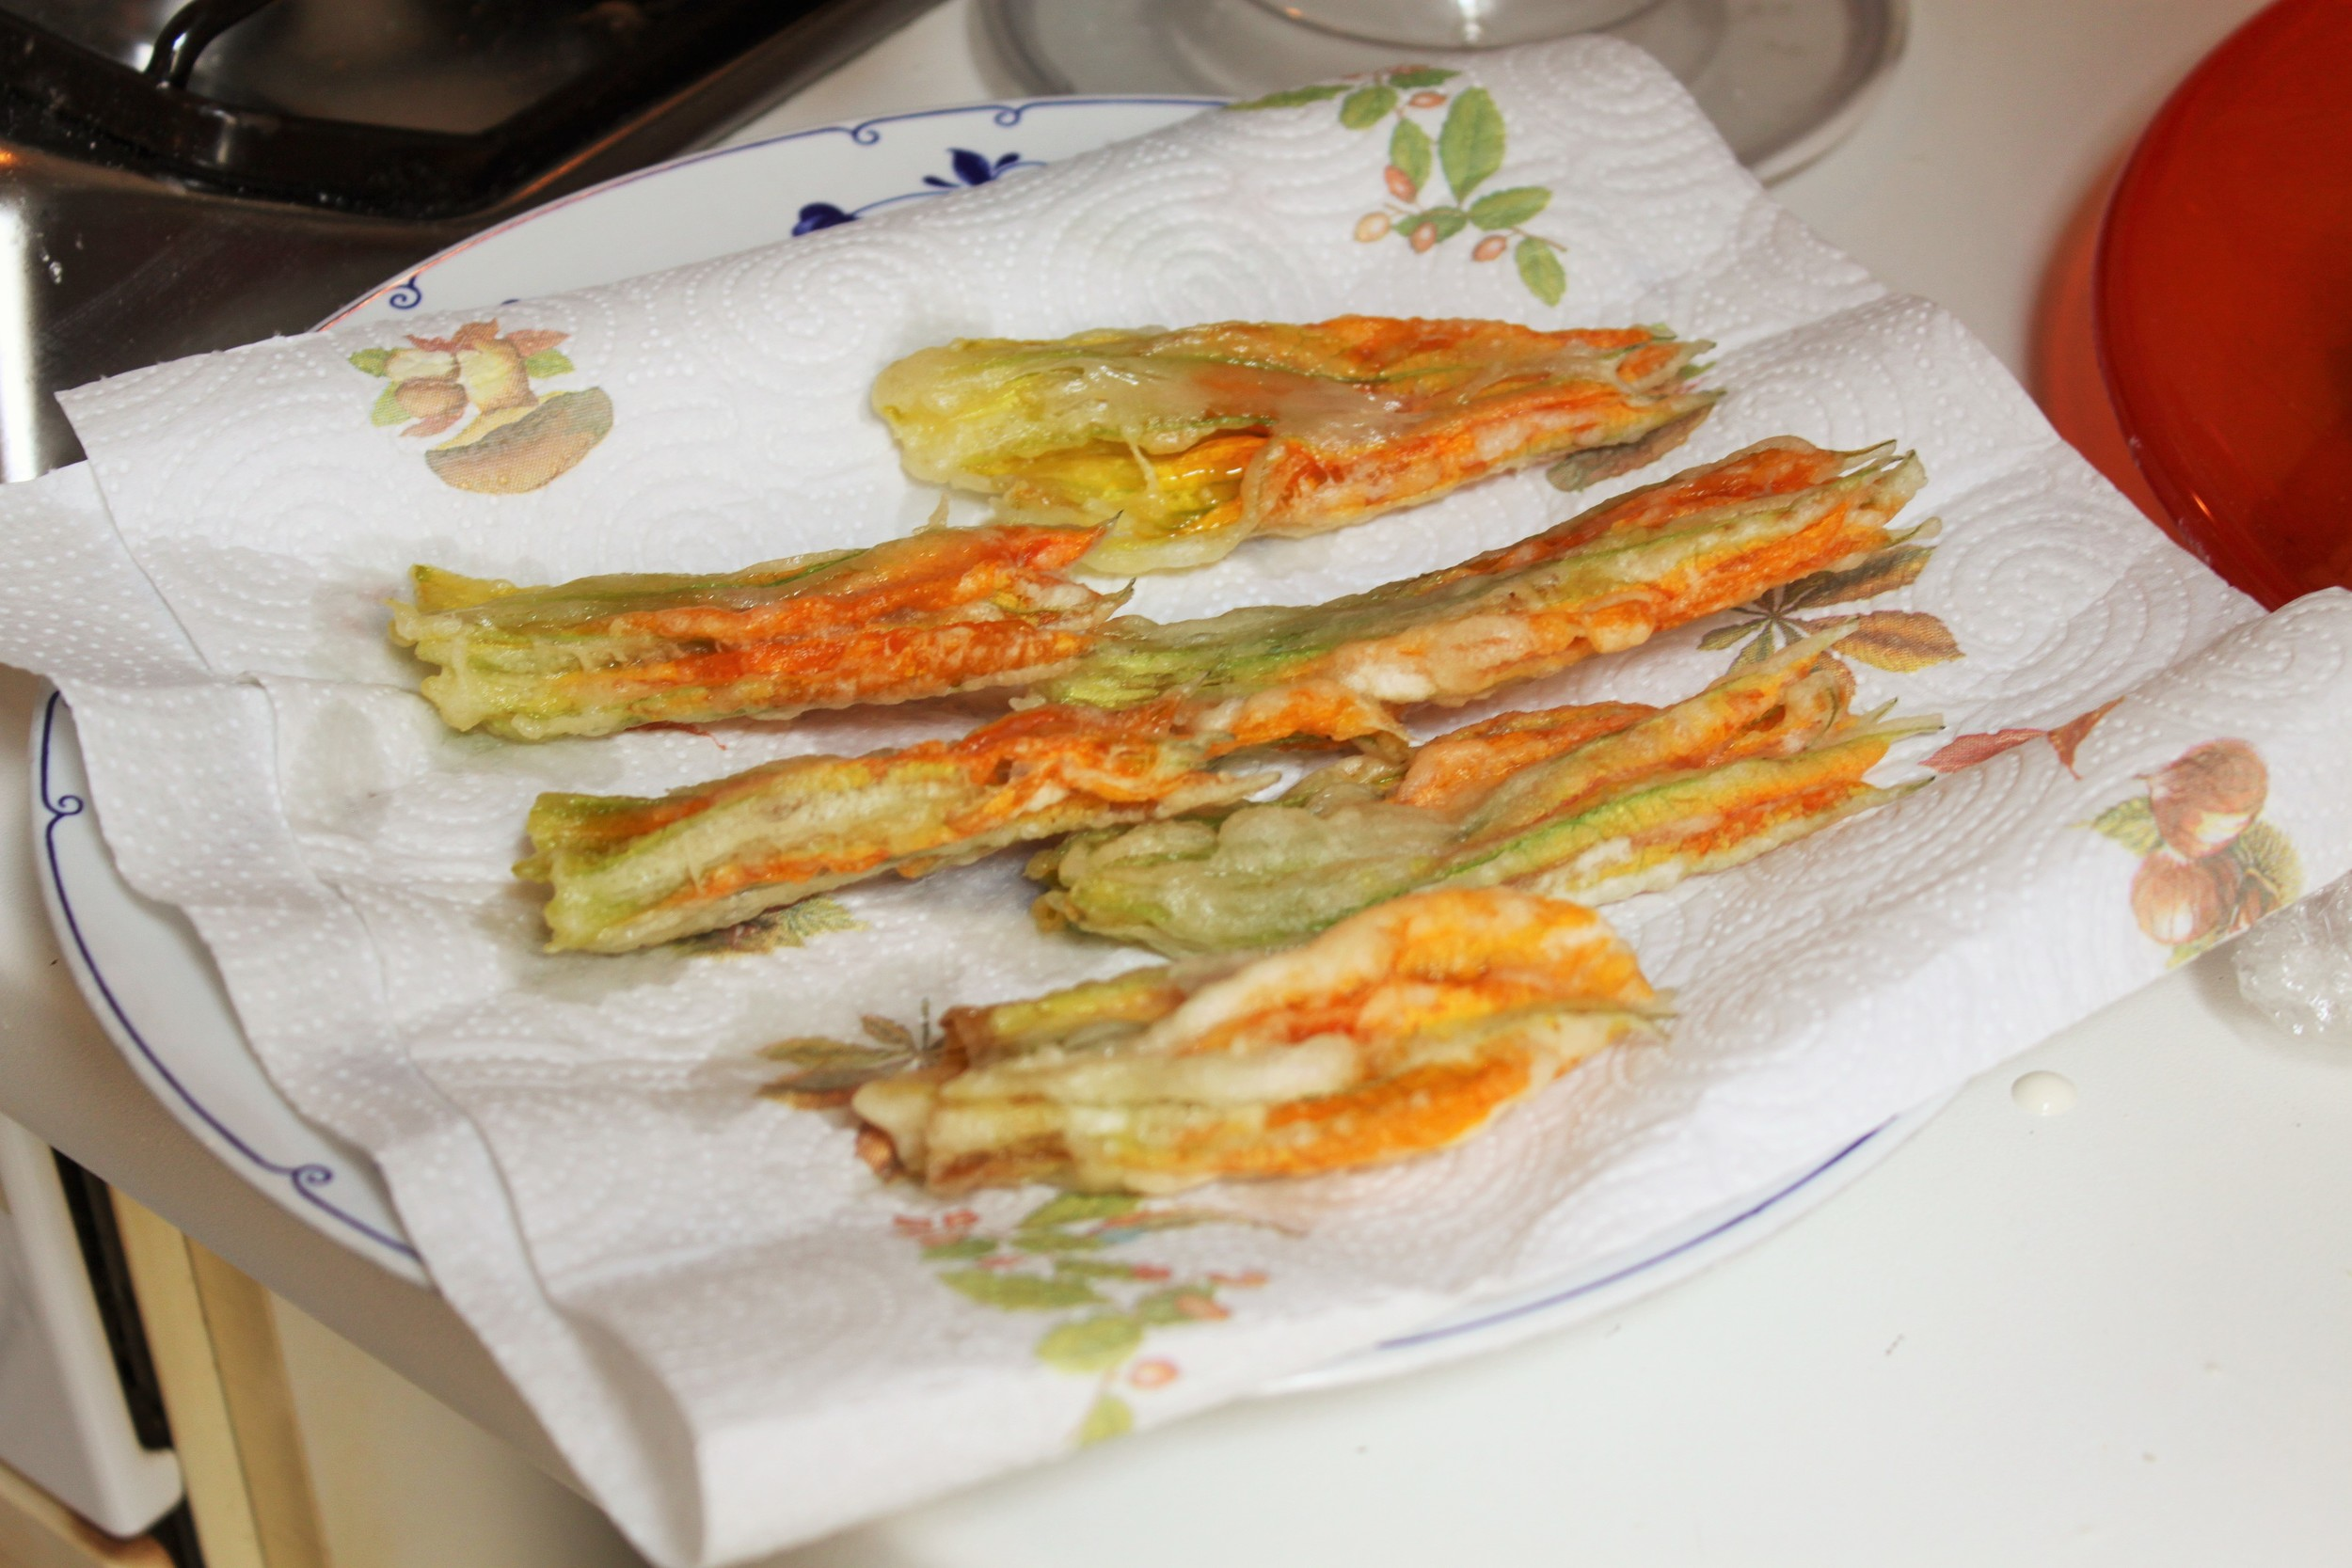 these may look like chicken feet but these are freshly fried zucchini flowers from one of  our cooking classes in Florence!